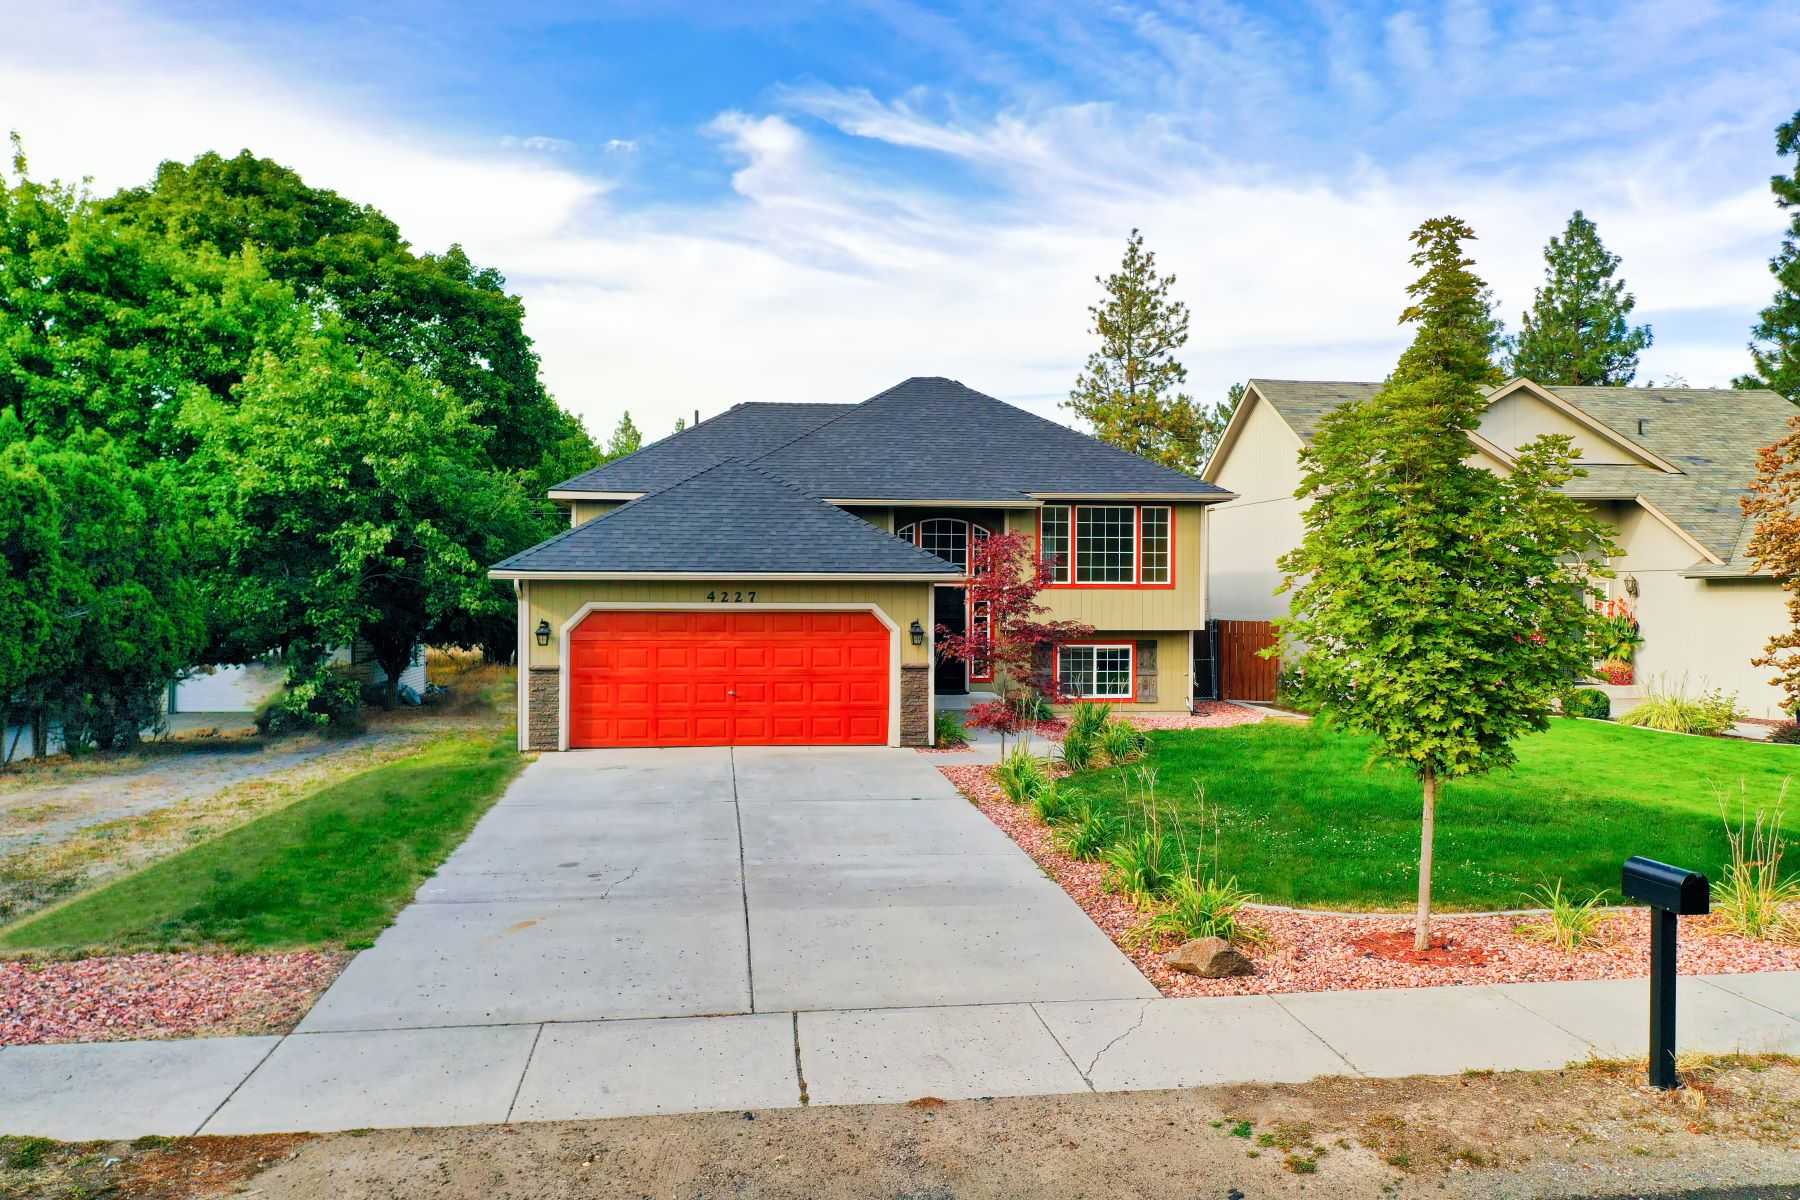 Single Family Homes for Sale at Impeccable Updated Home 4227 E 22nd Ave Spokane, Washington 99223 United States